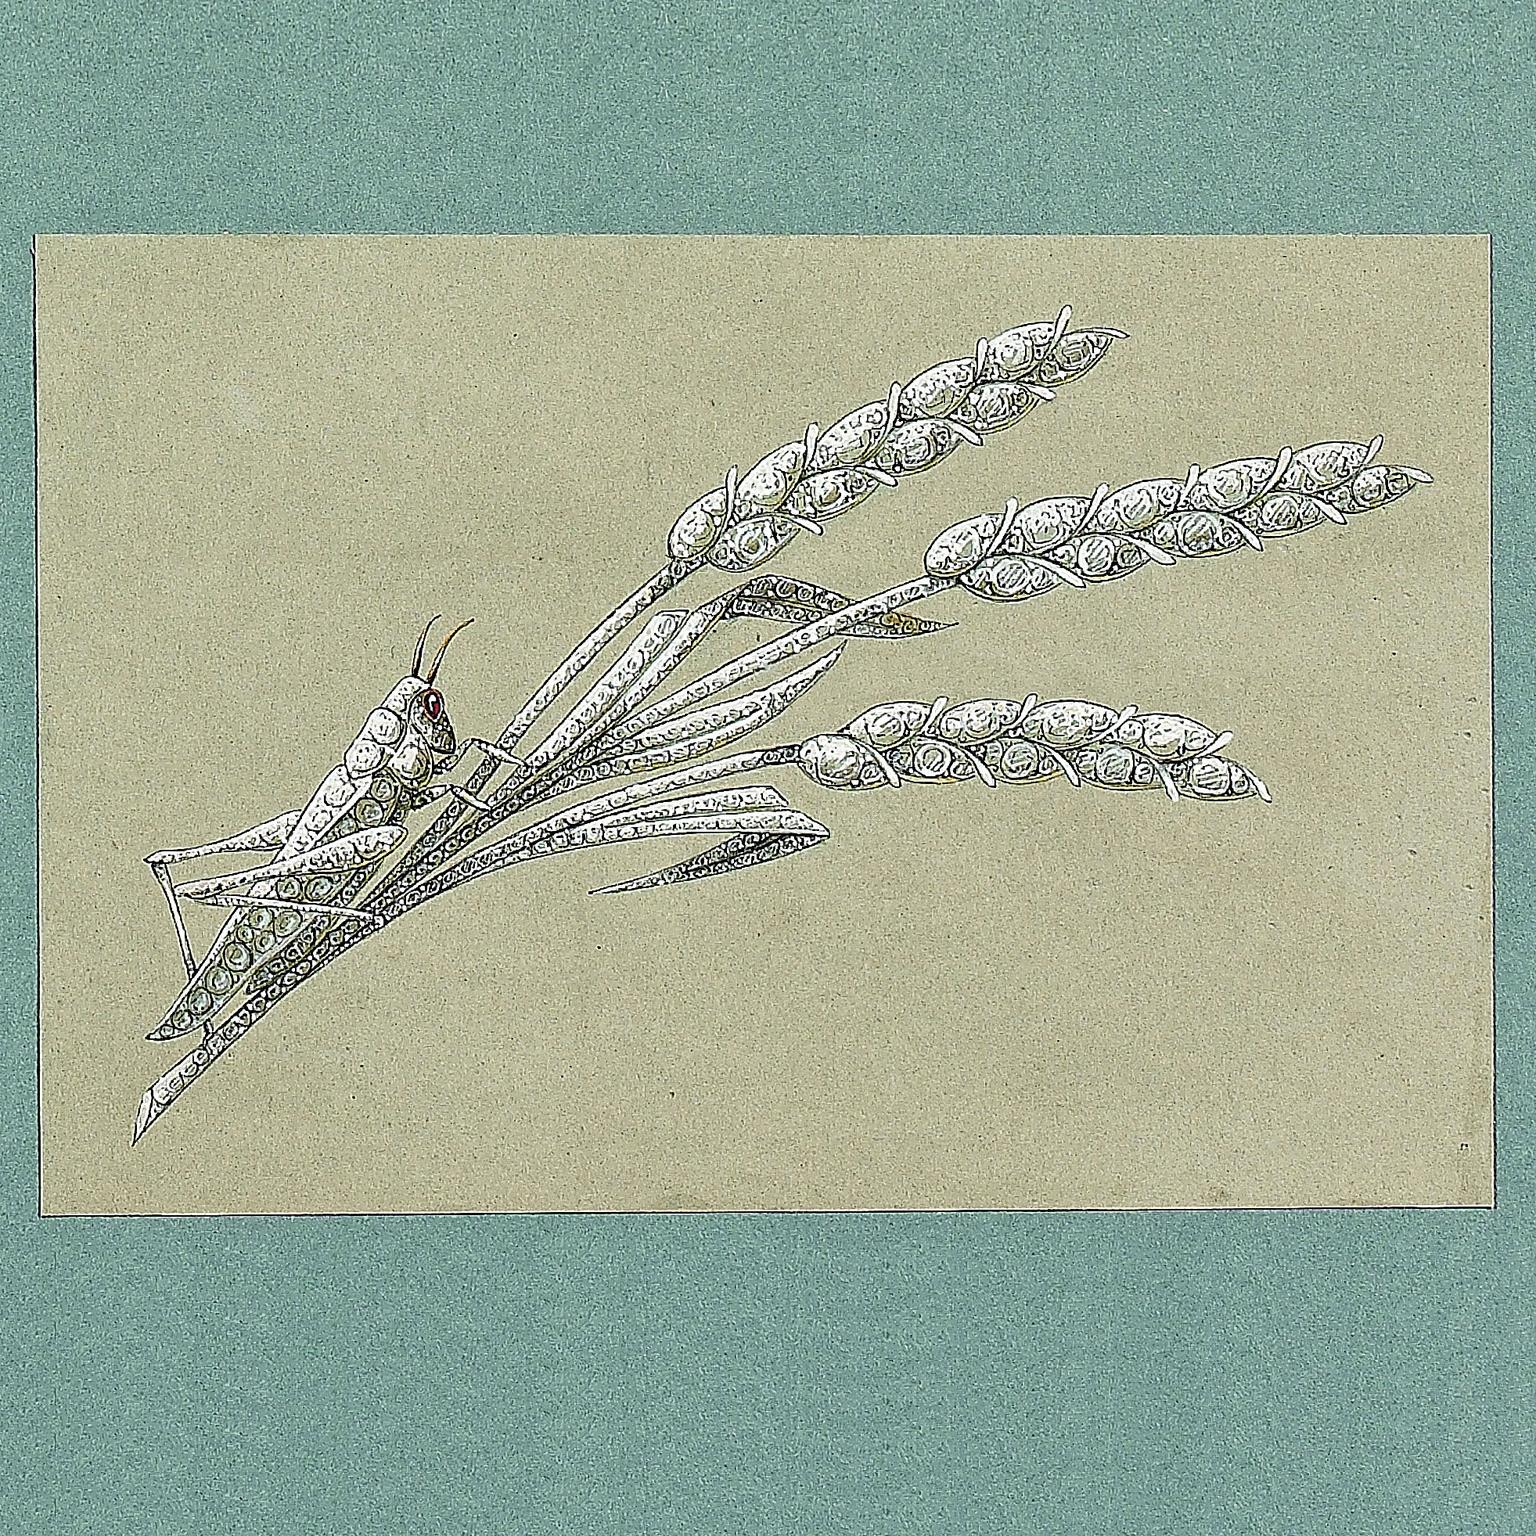 Preparatory sketch of a grasshopper on a sheaf of wheat brooch